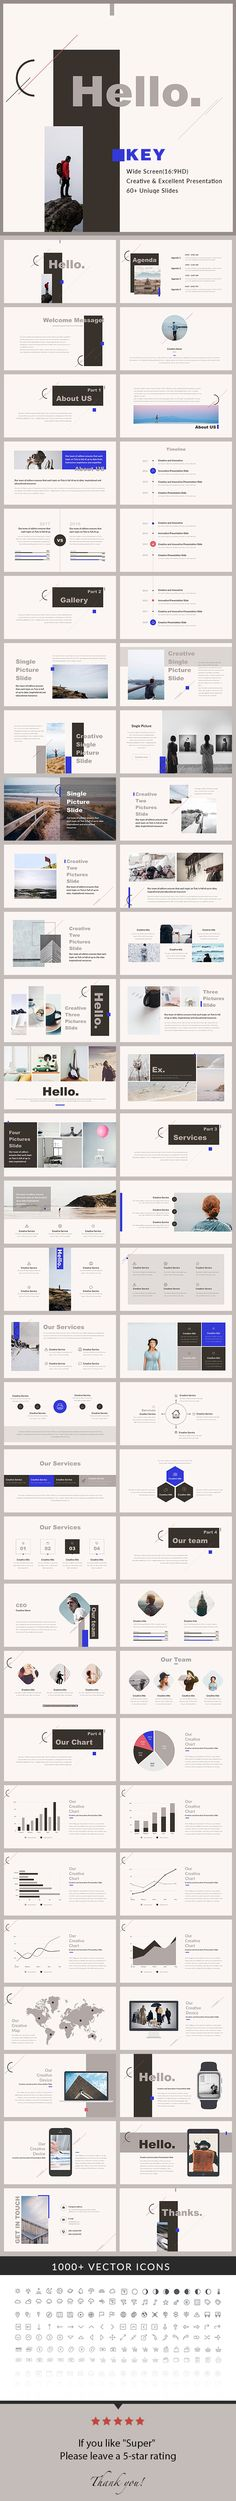 Hello - Keynote Presentation Template